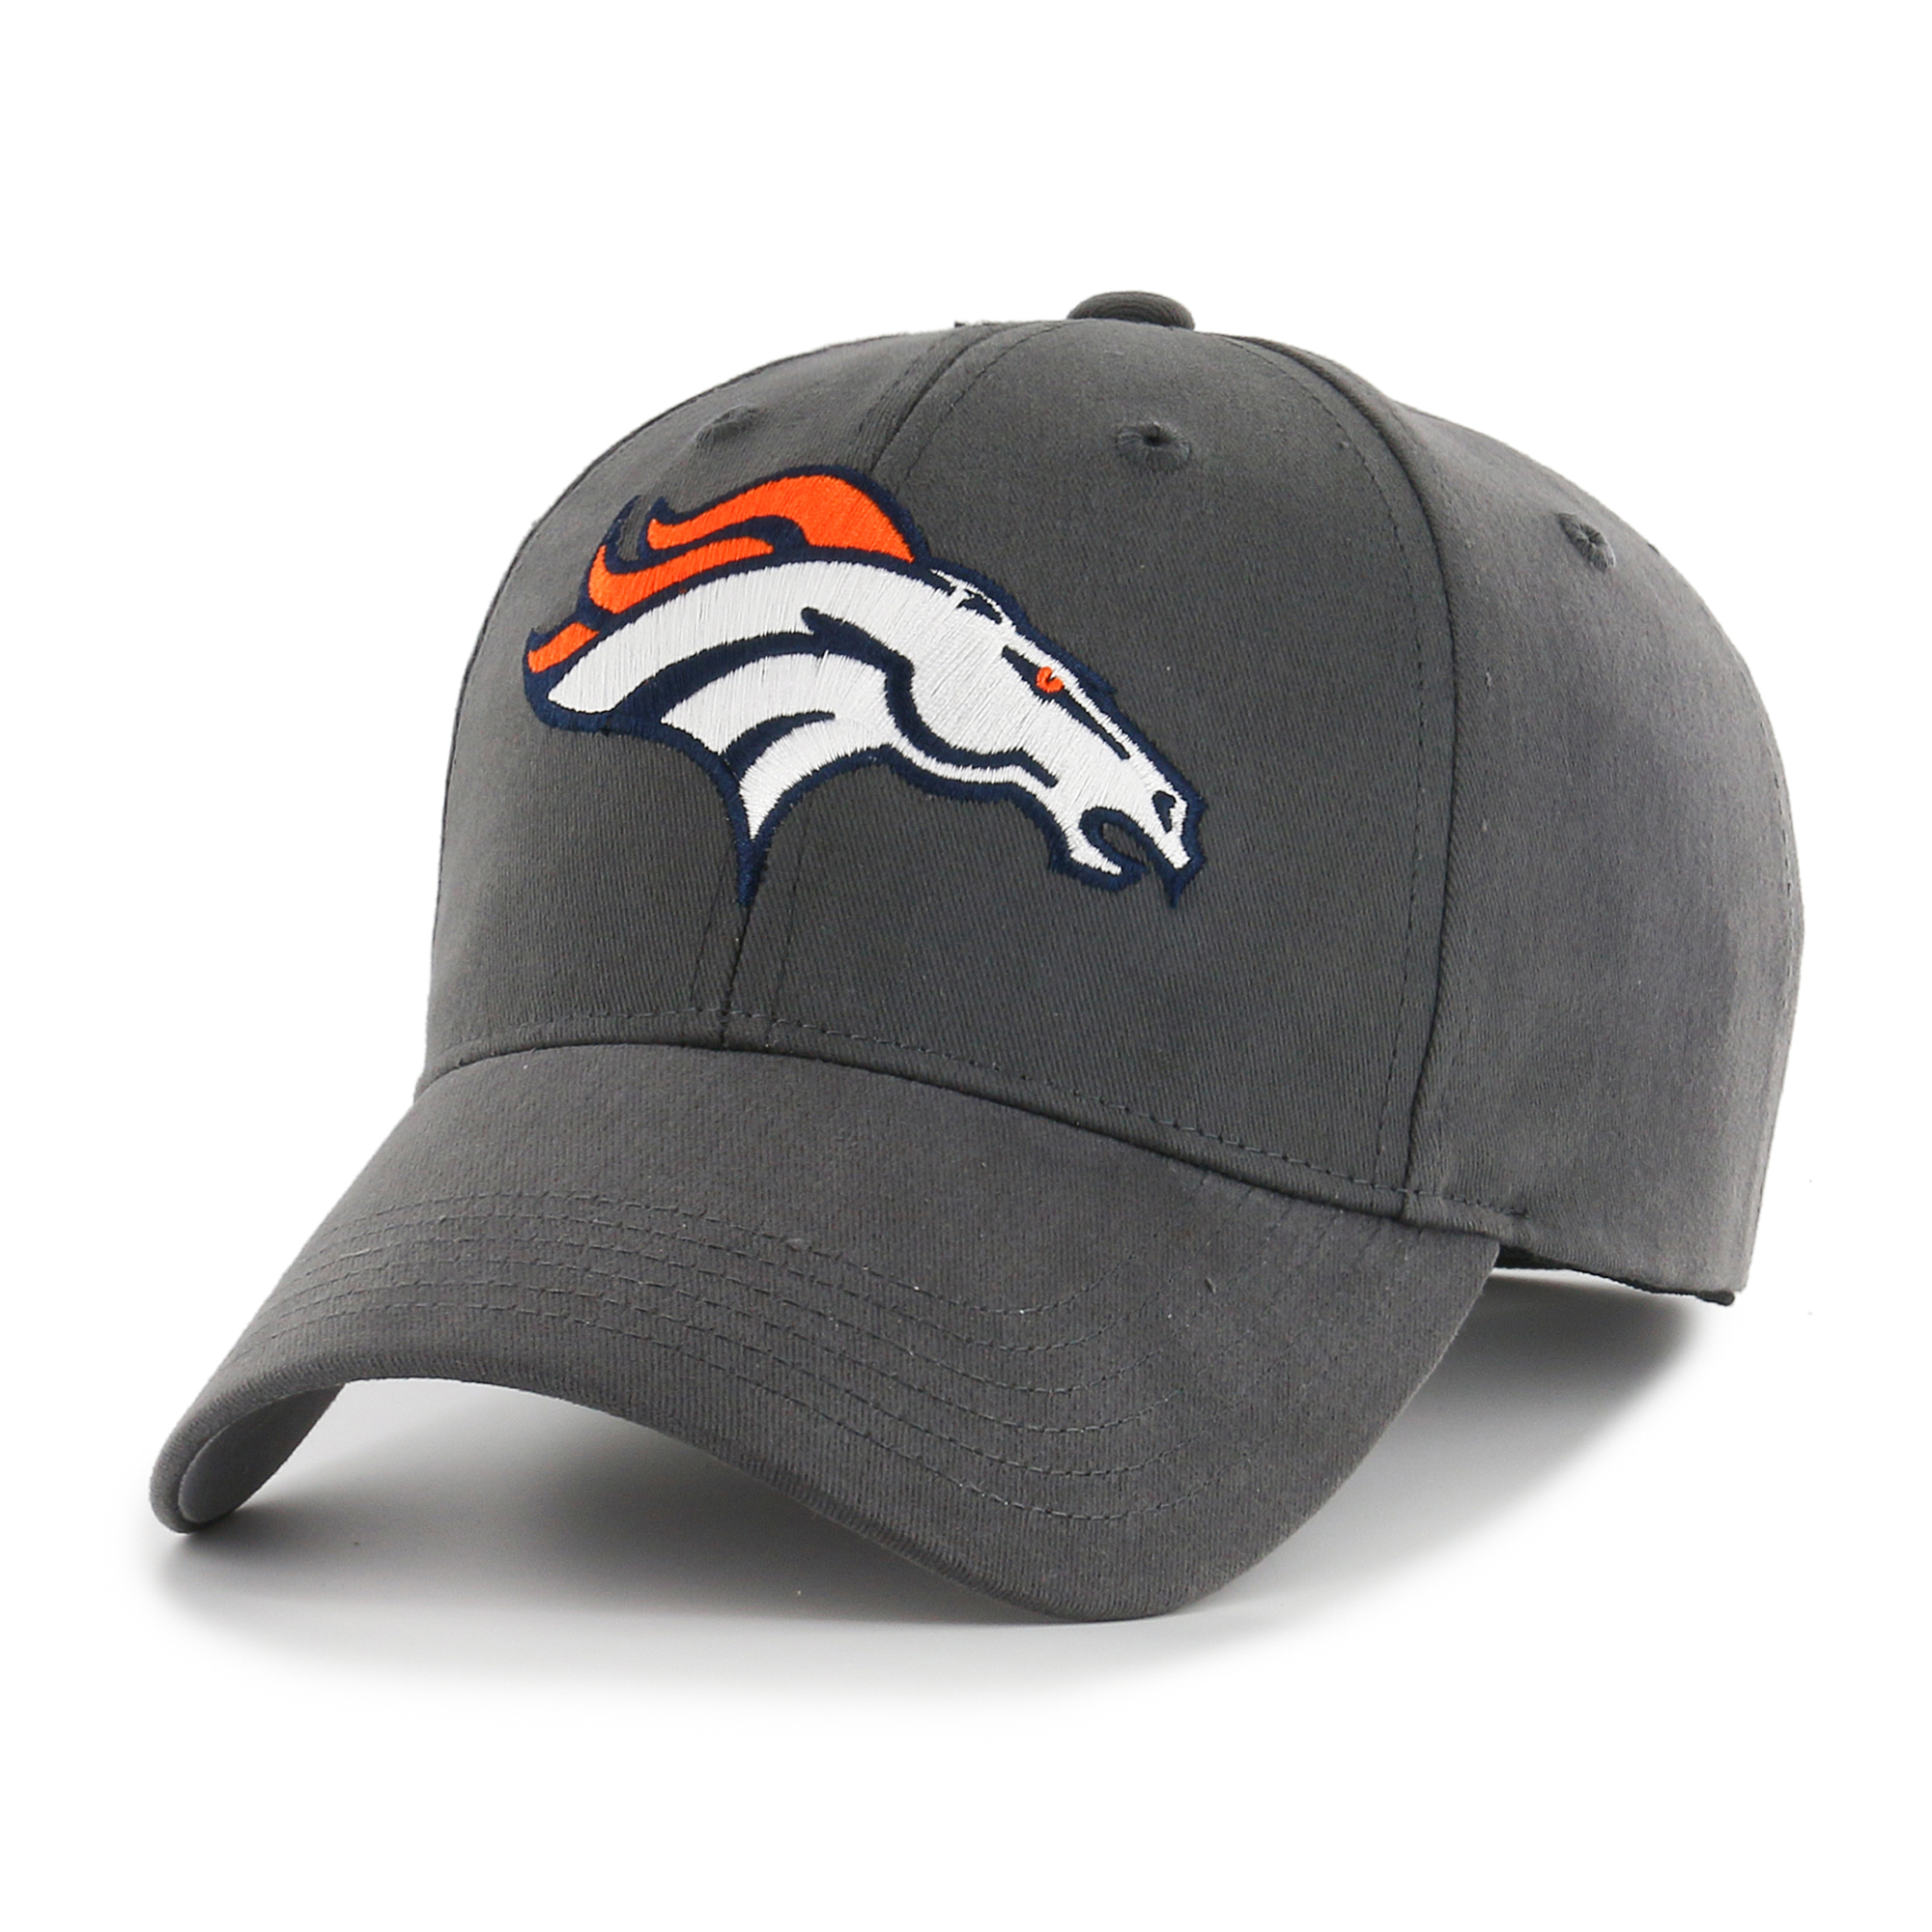 NFL Denver Broncos Basic Adjustable Cap/Hat by Fan Favorite